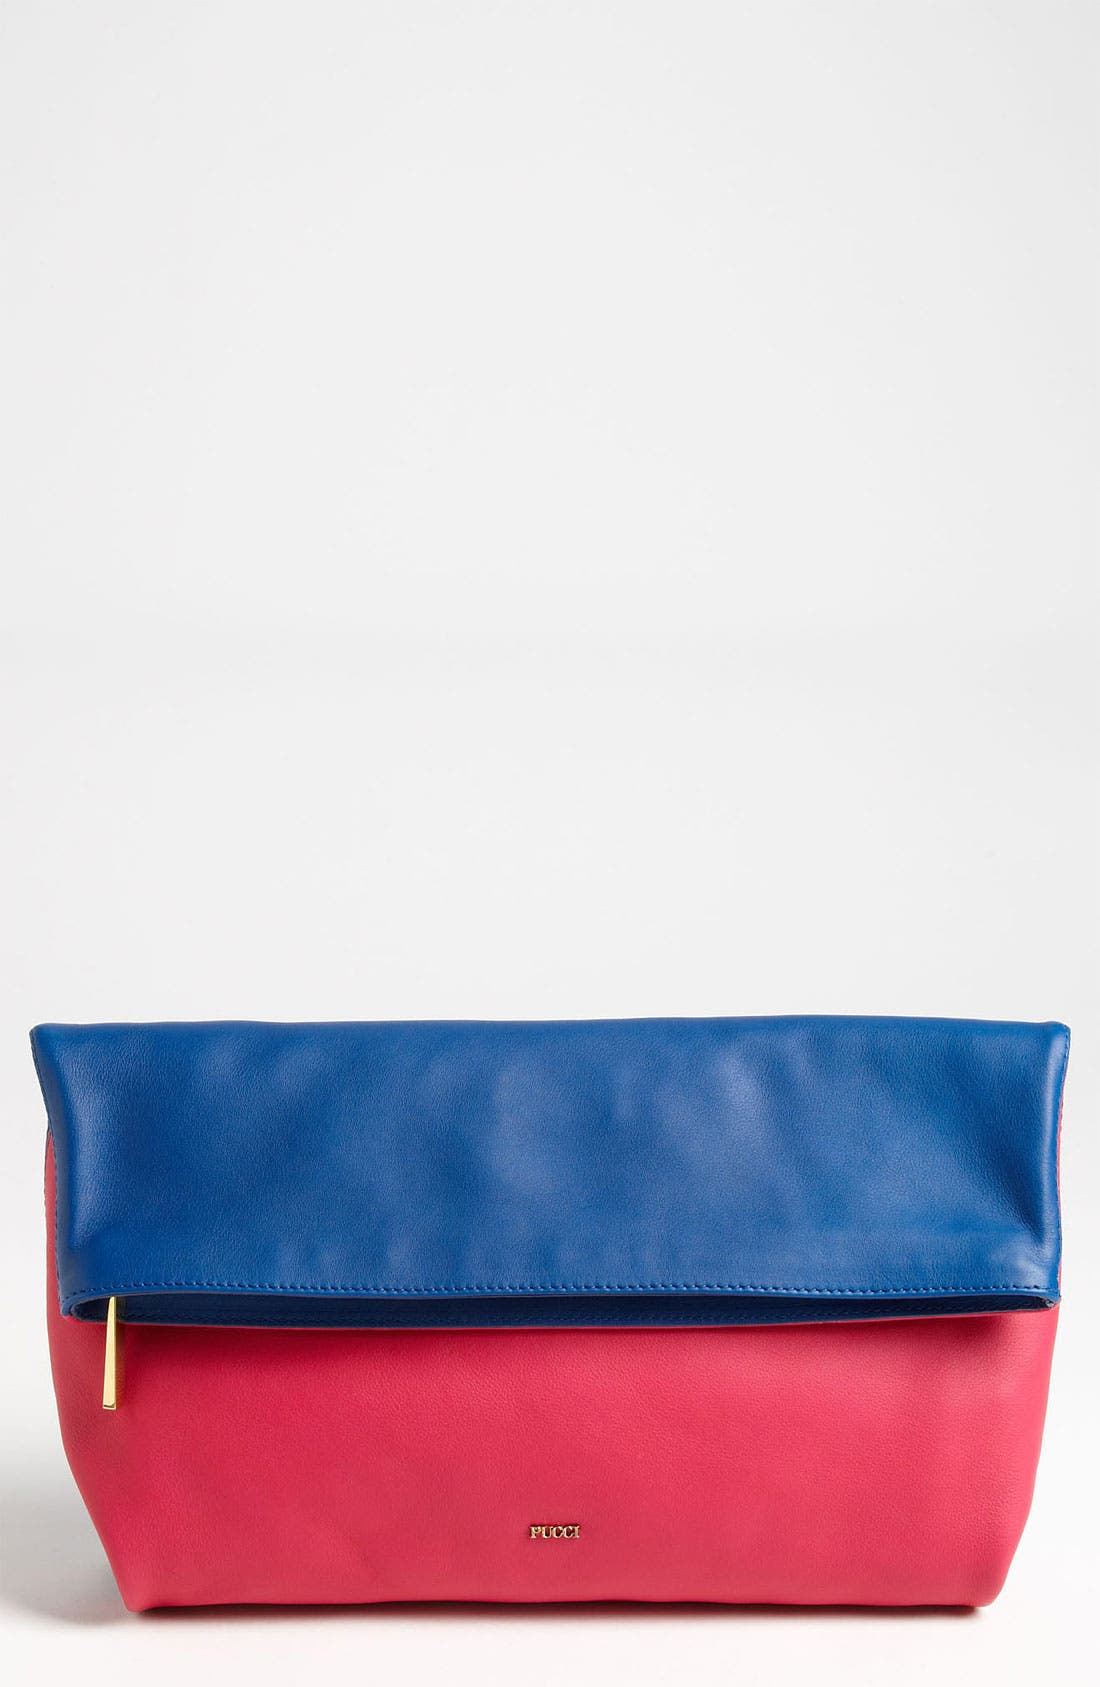 Alternate Image 1 Selected - Emilio Pucci 'Softy - Bicolor' Foldover Clutch